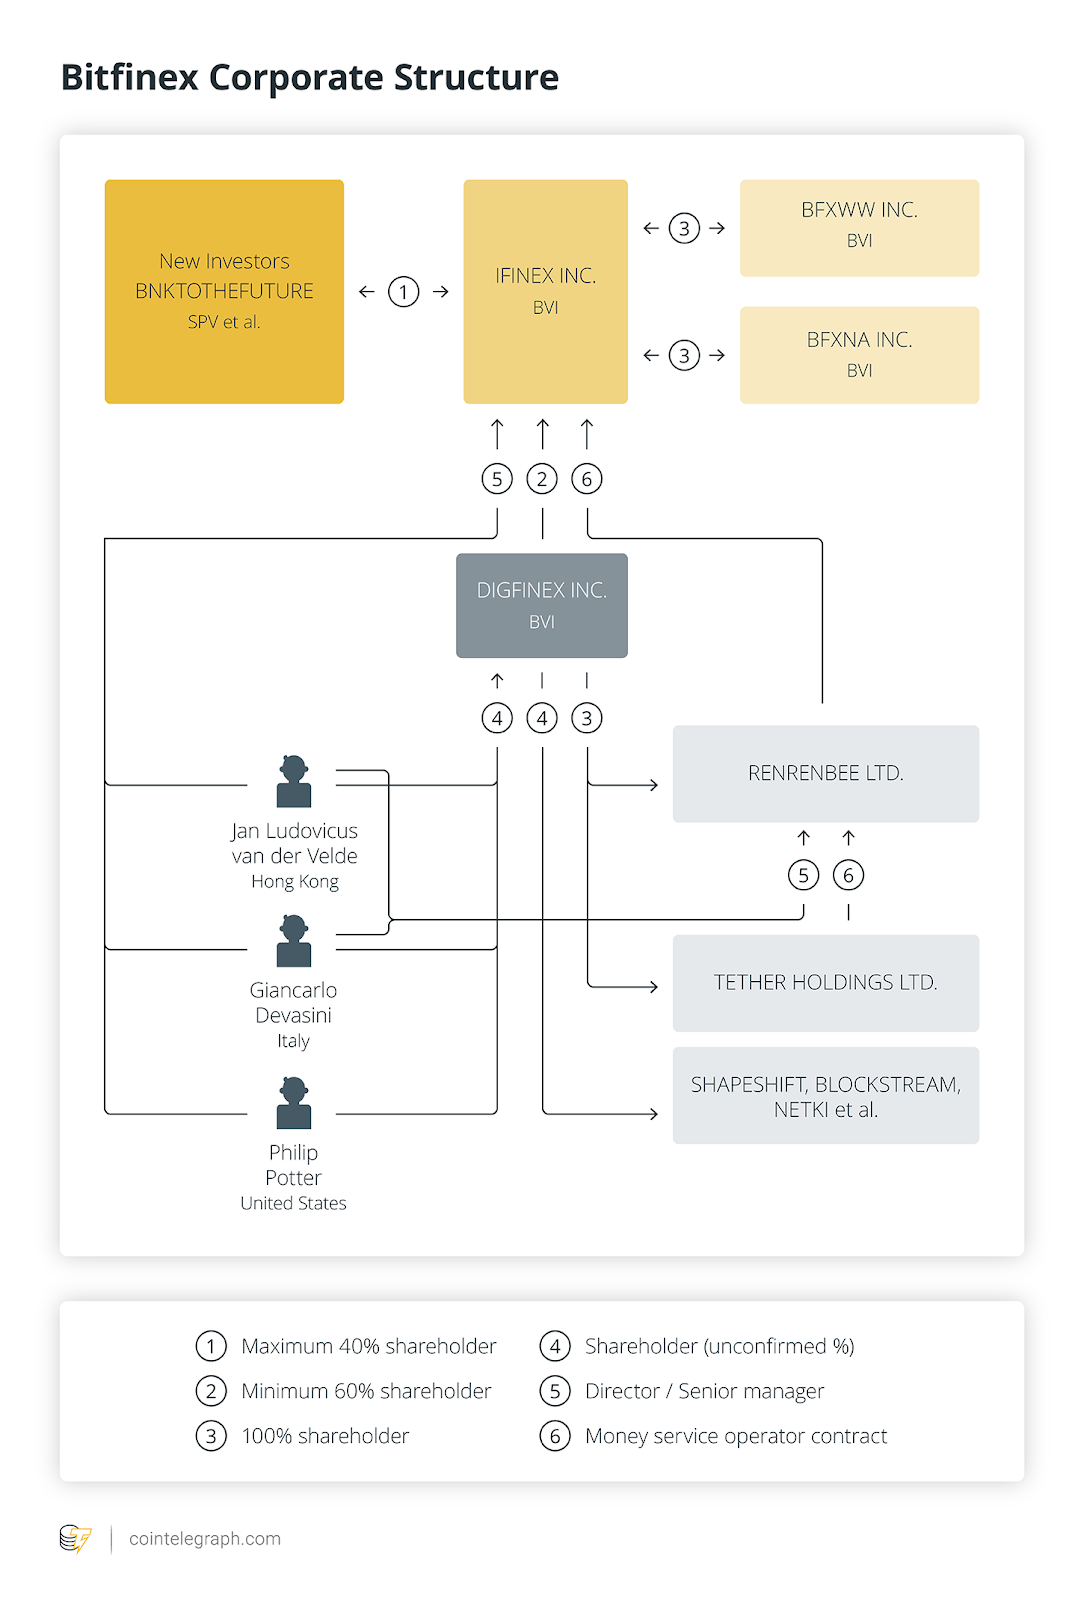 Bitfinex corporate structure